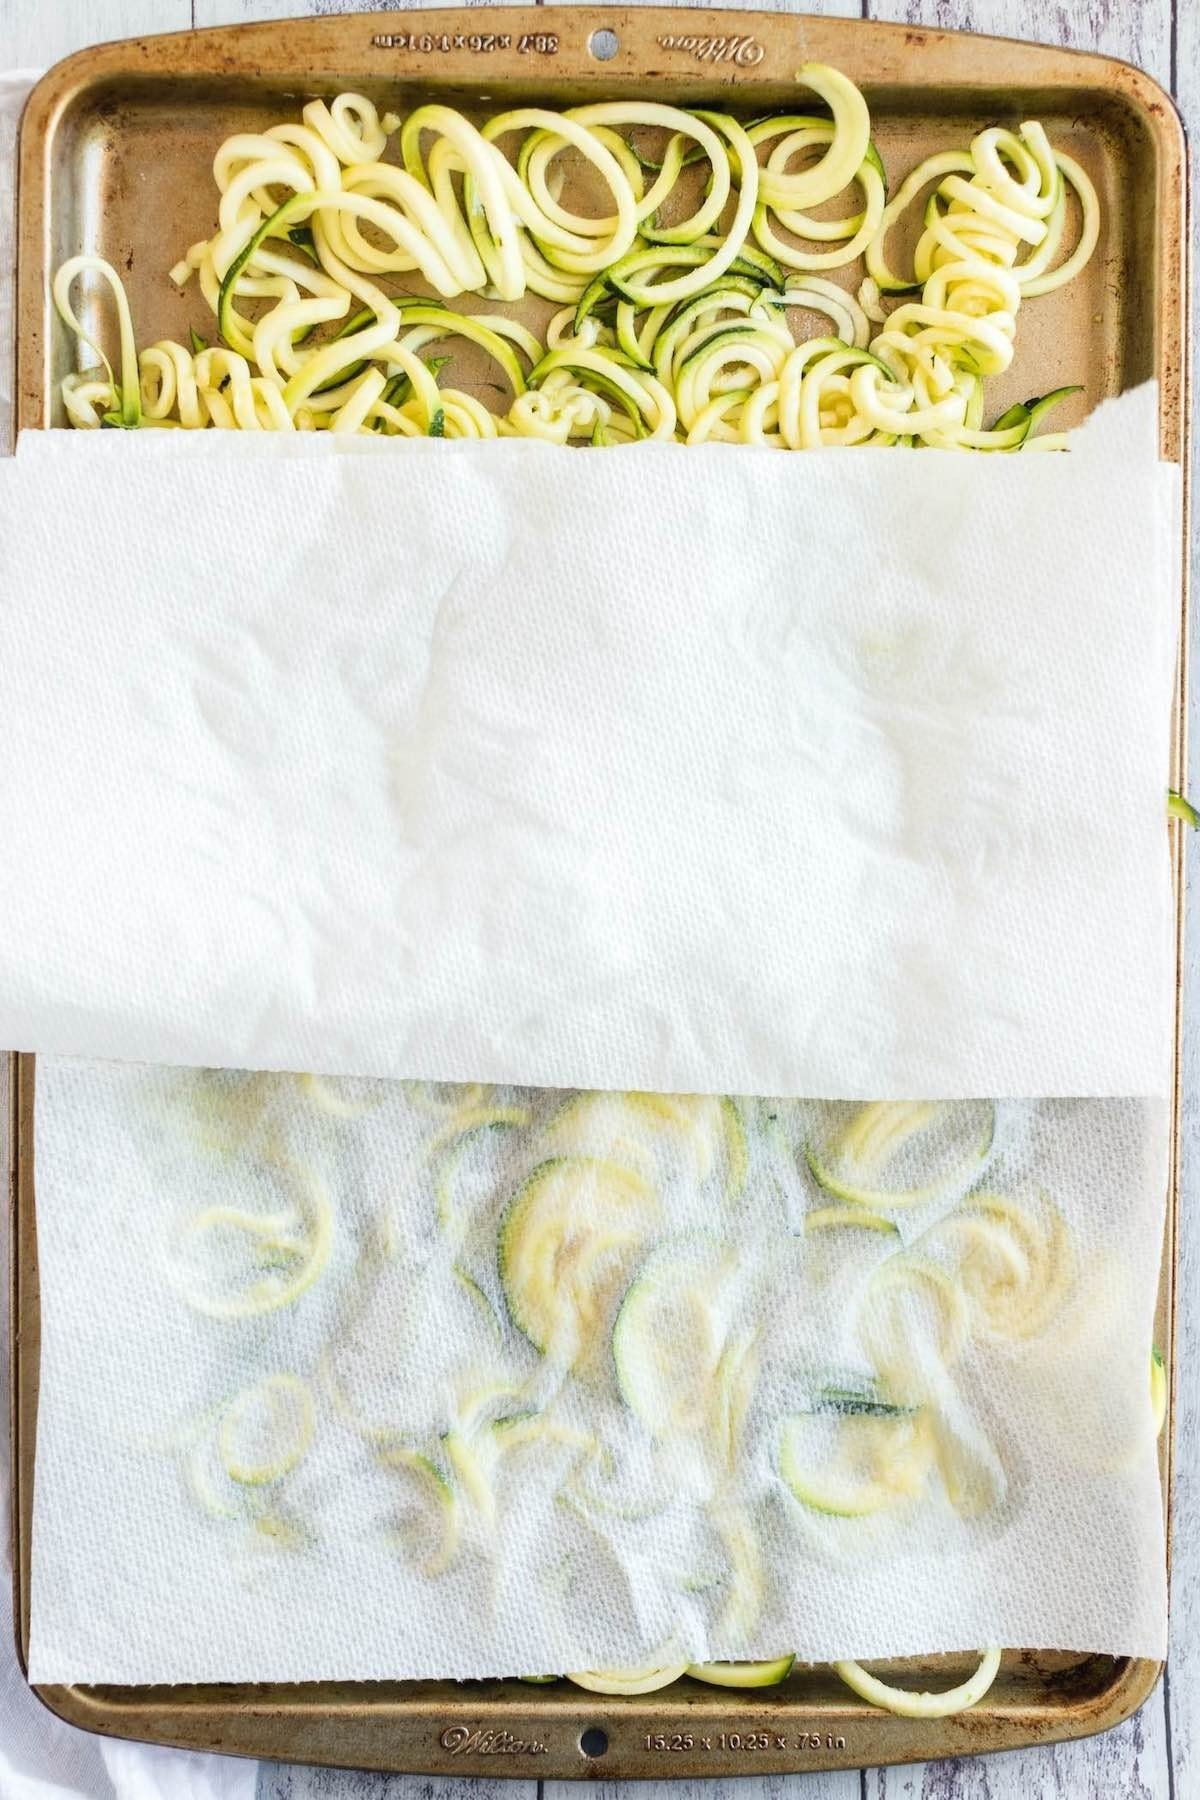 remove moisture with paper towel